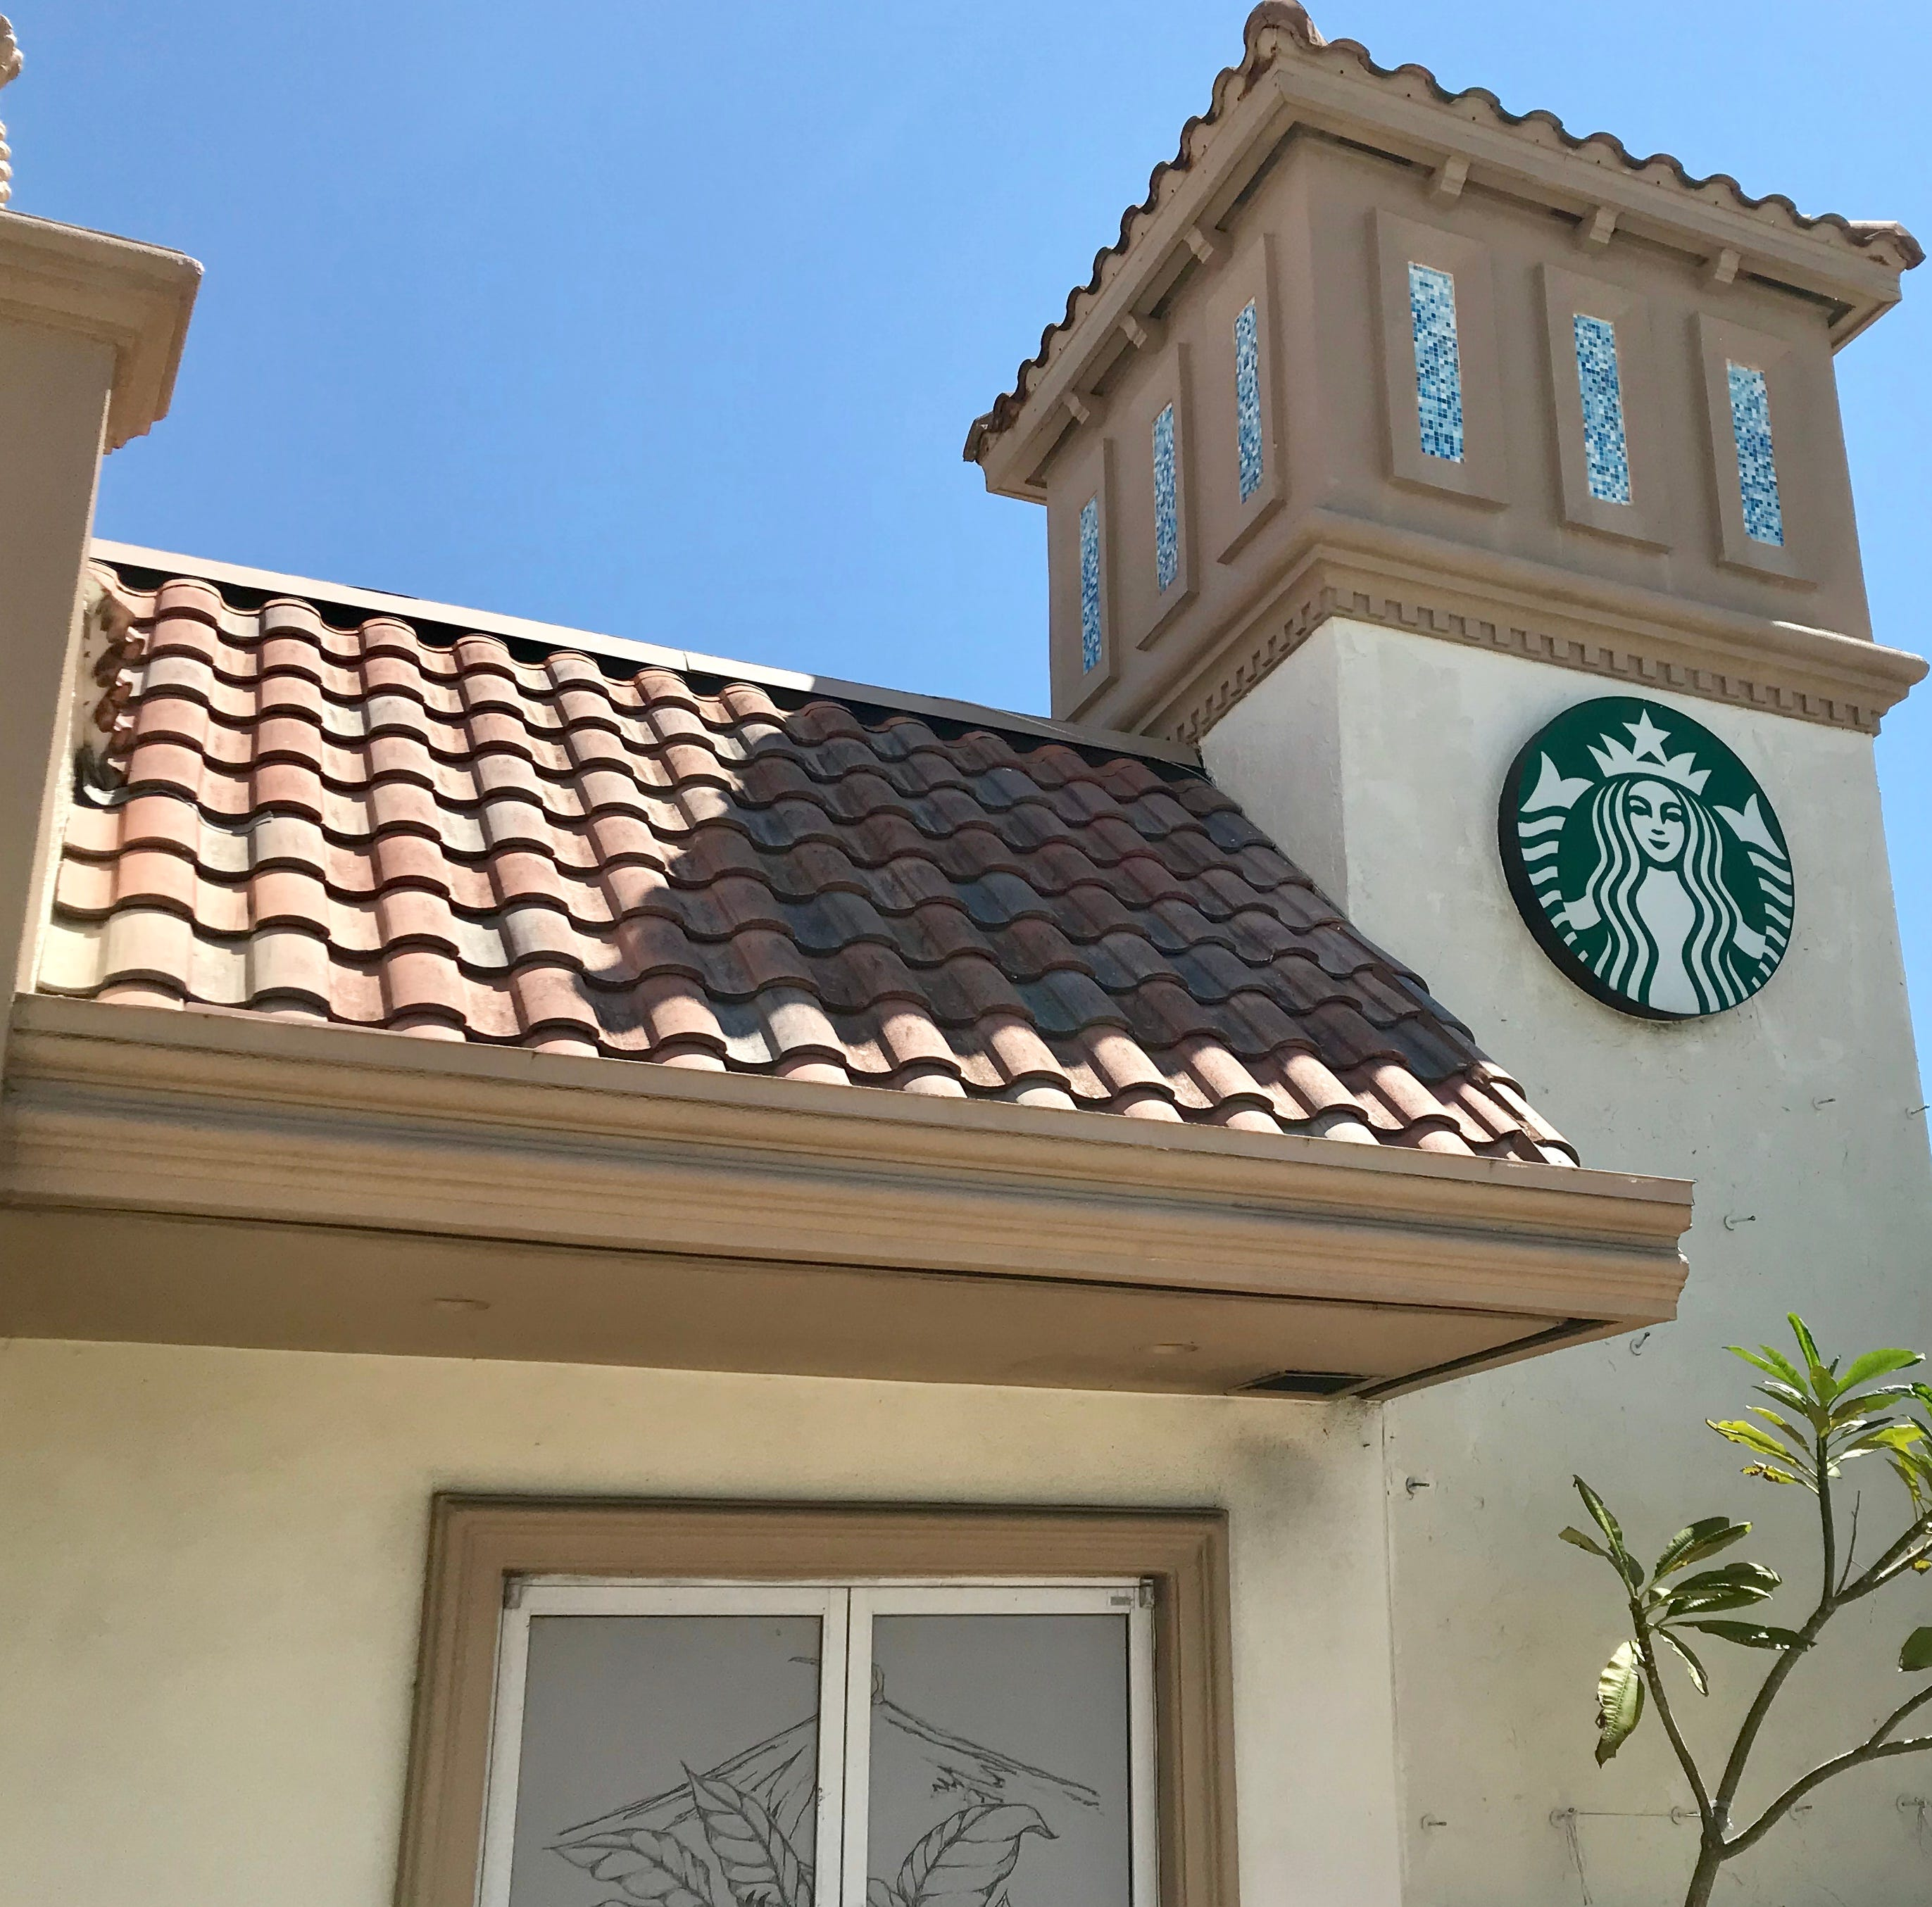 Starbucks in Indialantic, West Melbourne may move to larger stores with drive-thru windows